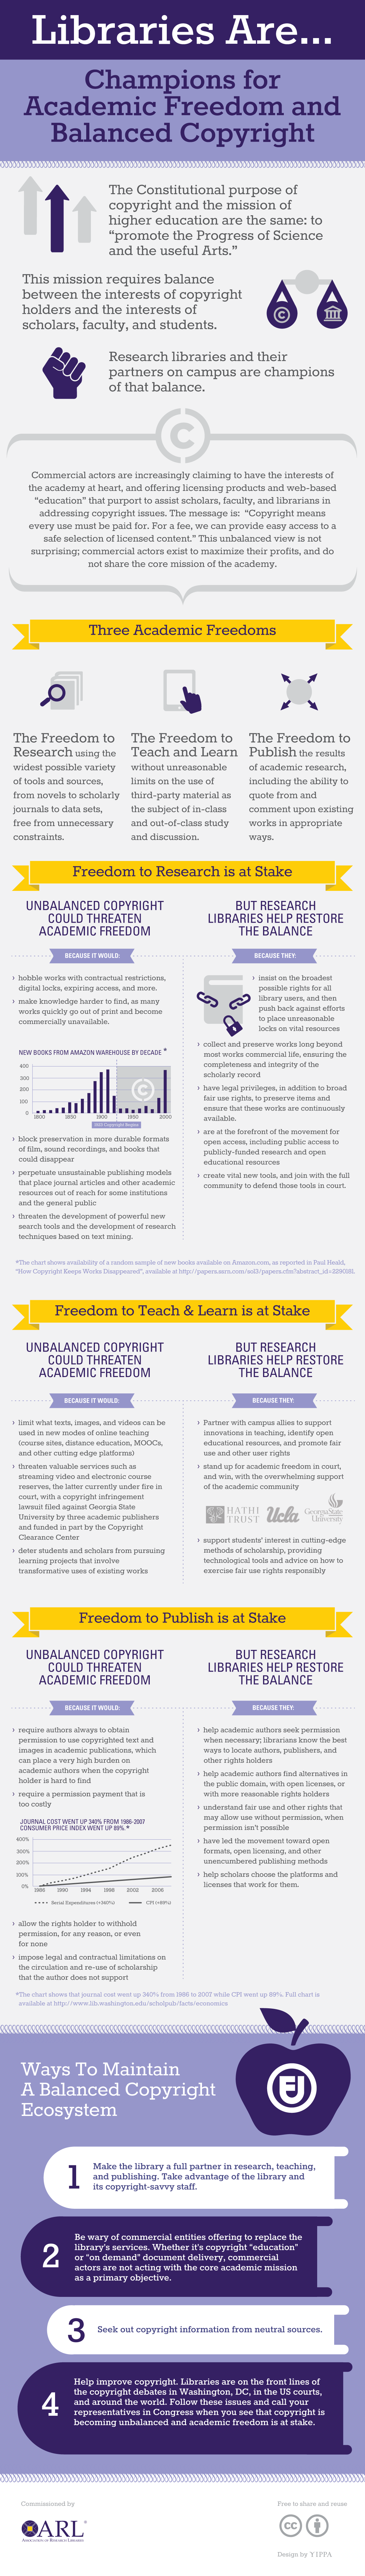 Infographic about librarians and copyright from the Association of Research Libraries.  CC.